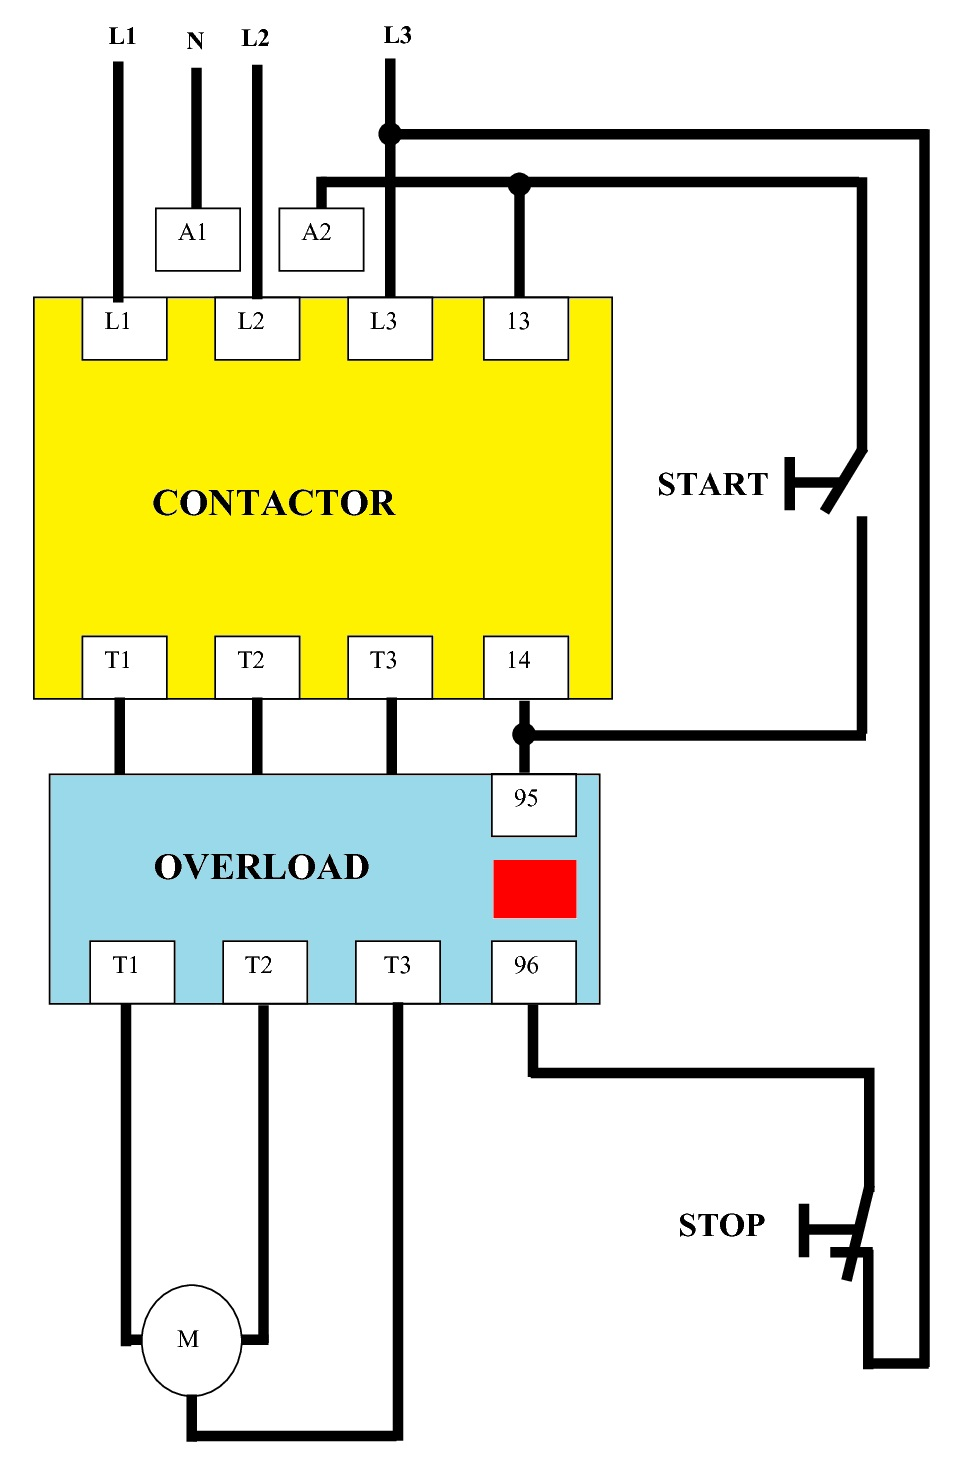 Direct On Line (DOL) Wiring Diagram for 3Phase with 110